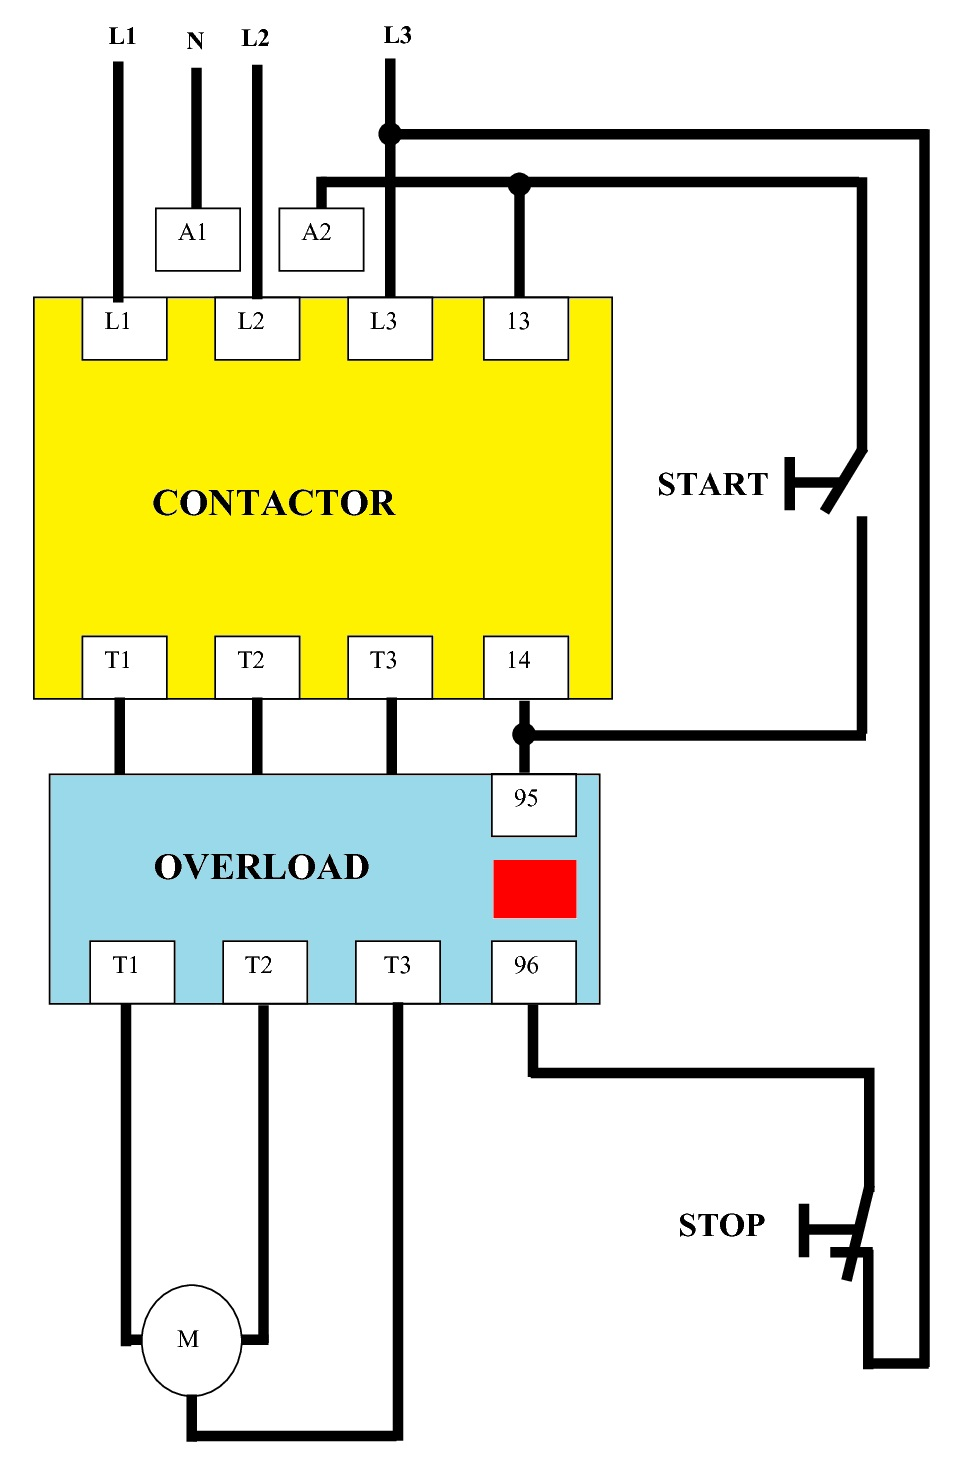 Direct On Line (DOL) Wiring Diagram for 3Phase with 110